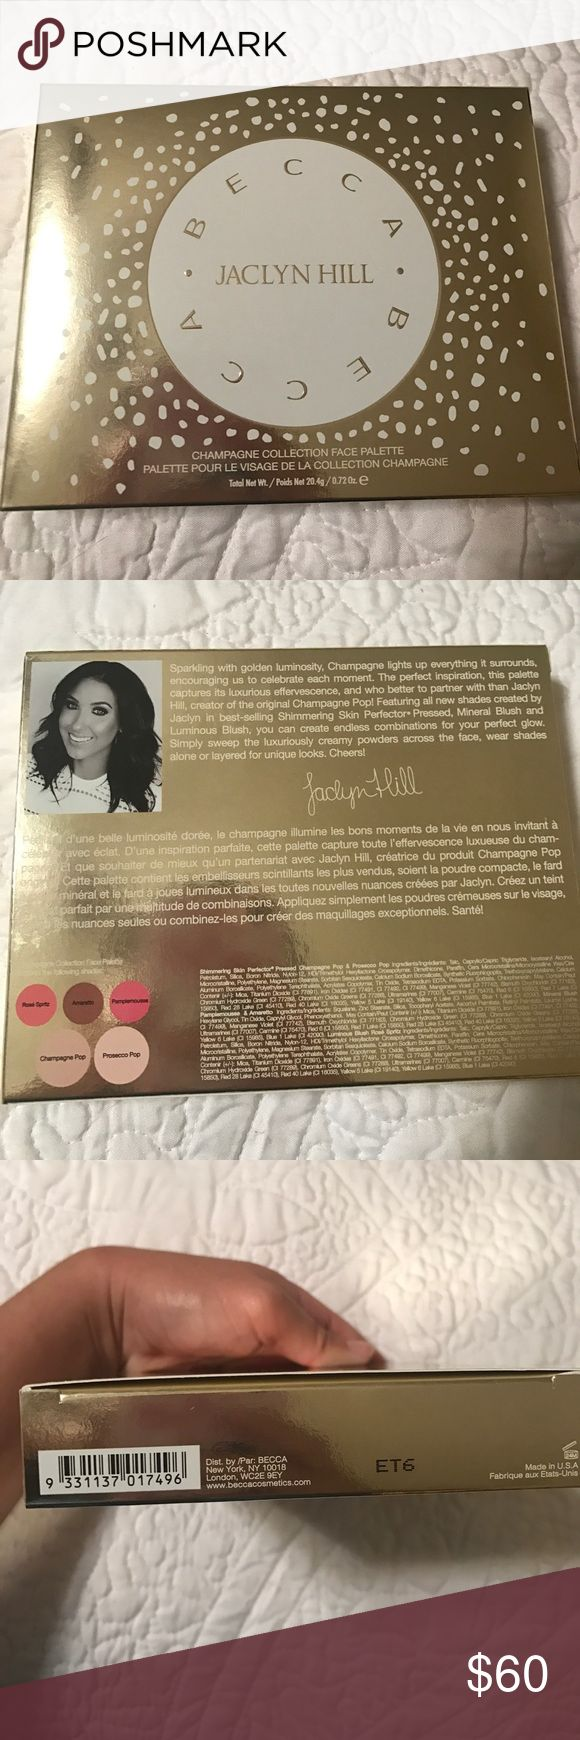 Becca X Jaclyn Hill Face Palette Brand new and never used, even has the protective film over the top as well as the sample that came with it! I I bought this for the hype when it was released but could never get myself to use it. It needs a new home! This palette was limited Edition and is no longer being sold in stores. BECCA Makeup Luminizer